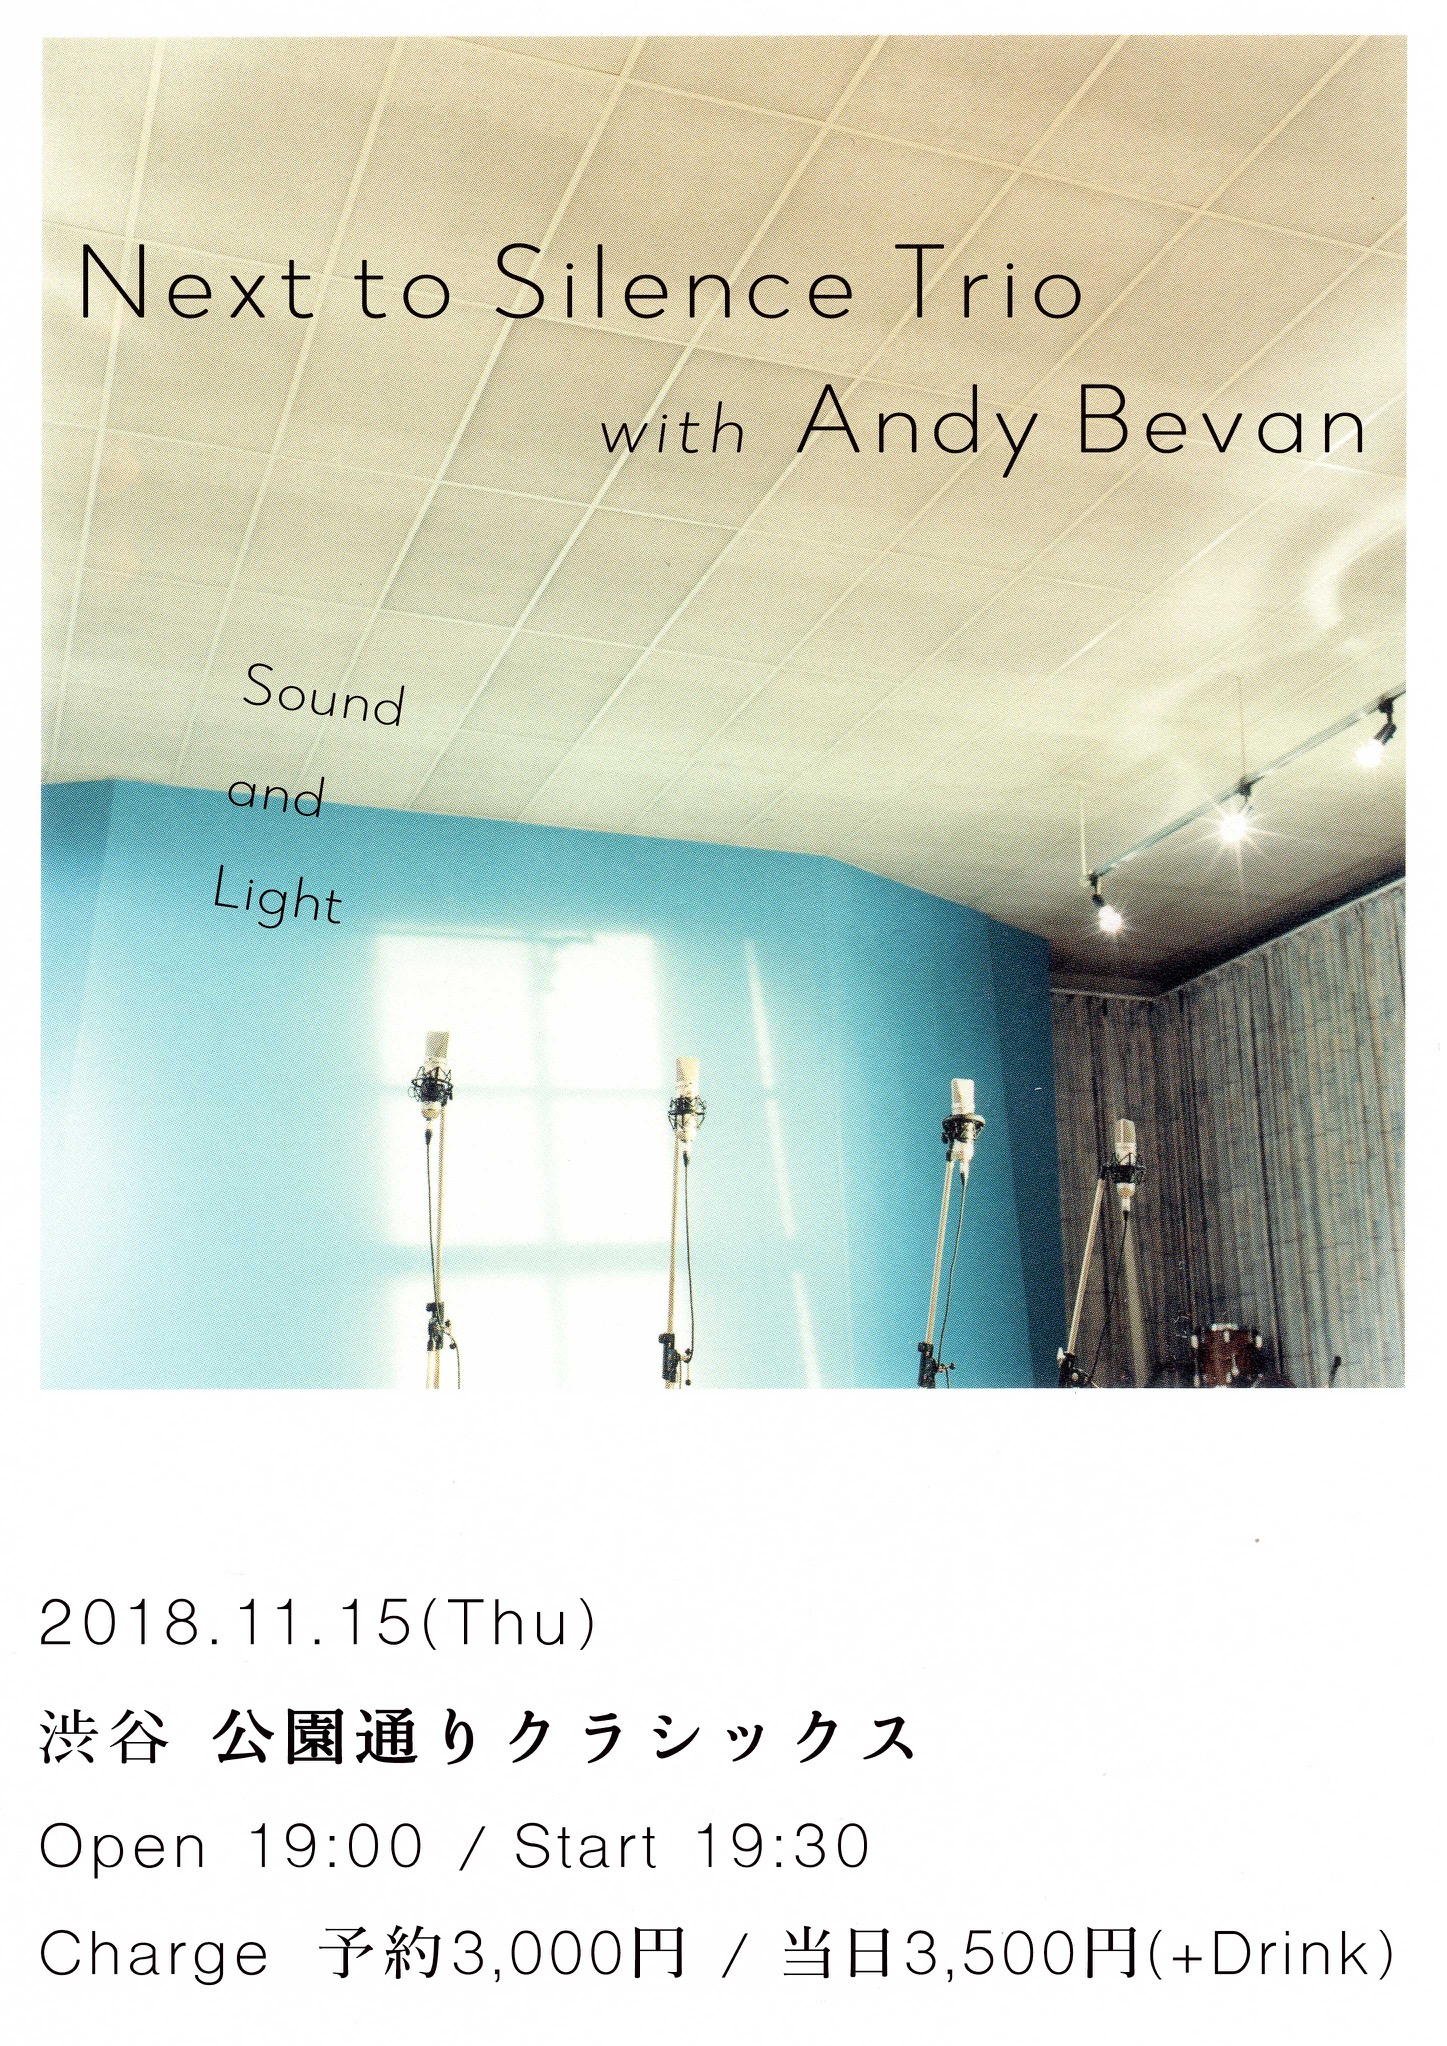 Next to Silence Trio with Andy Bevan